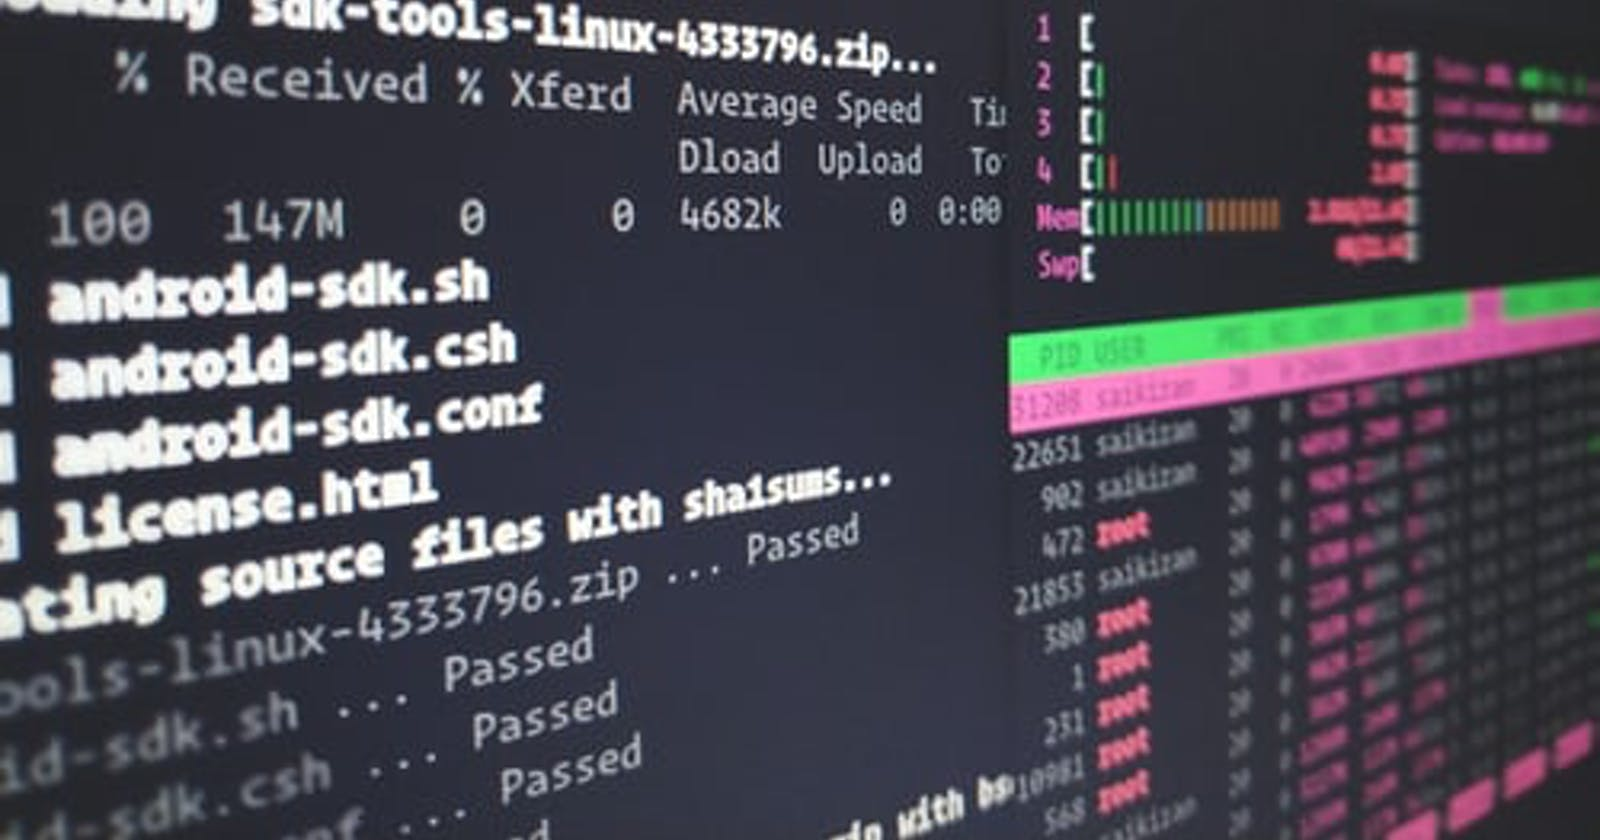 scp command in Linux 💻